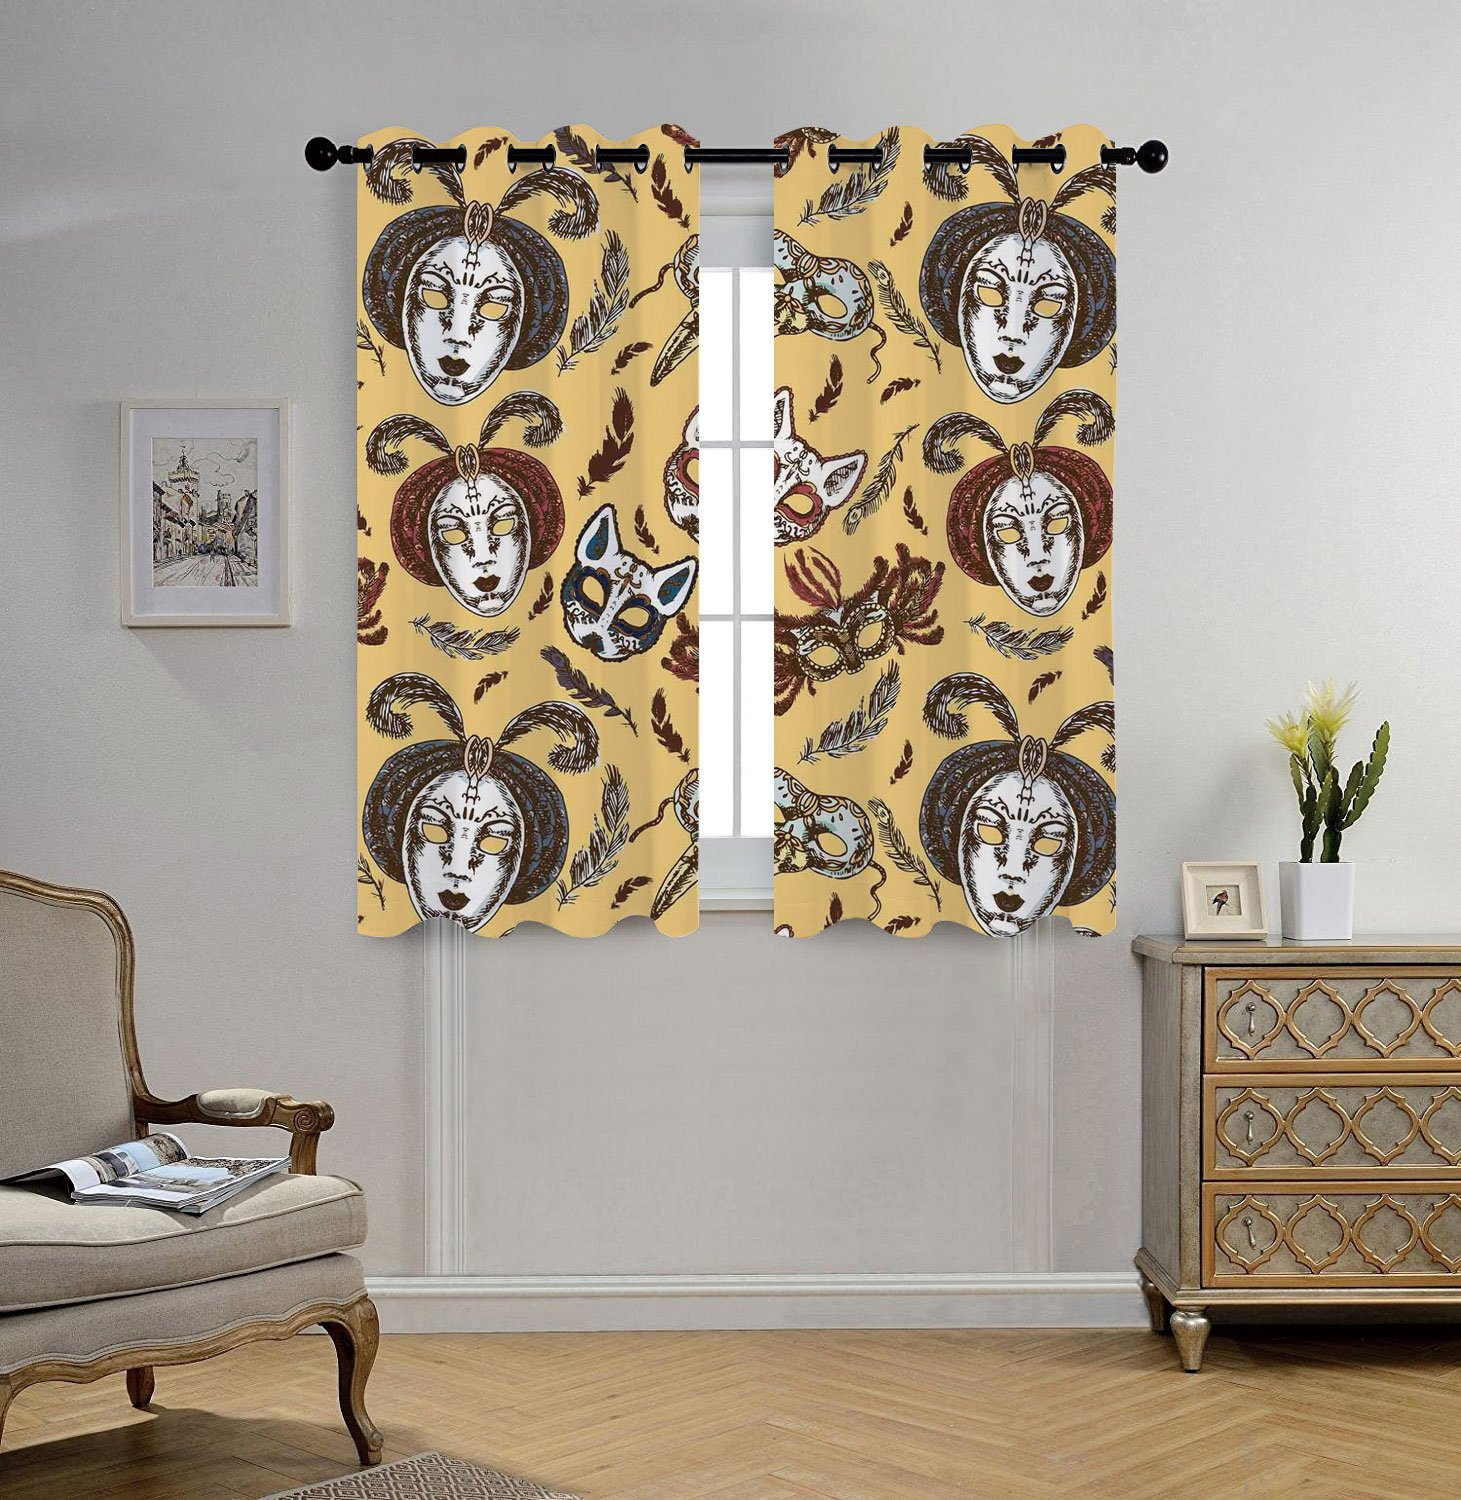 iPrint Stylish Window Curtains,Masquerade,Venetian Style Paper Mache Face Mask With Feathers Dance Event Theme,Mustard Brown White,2 Panel Set Window Drapes,for Living Room Bedroom Kitchen Cafe